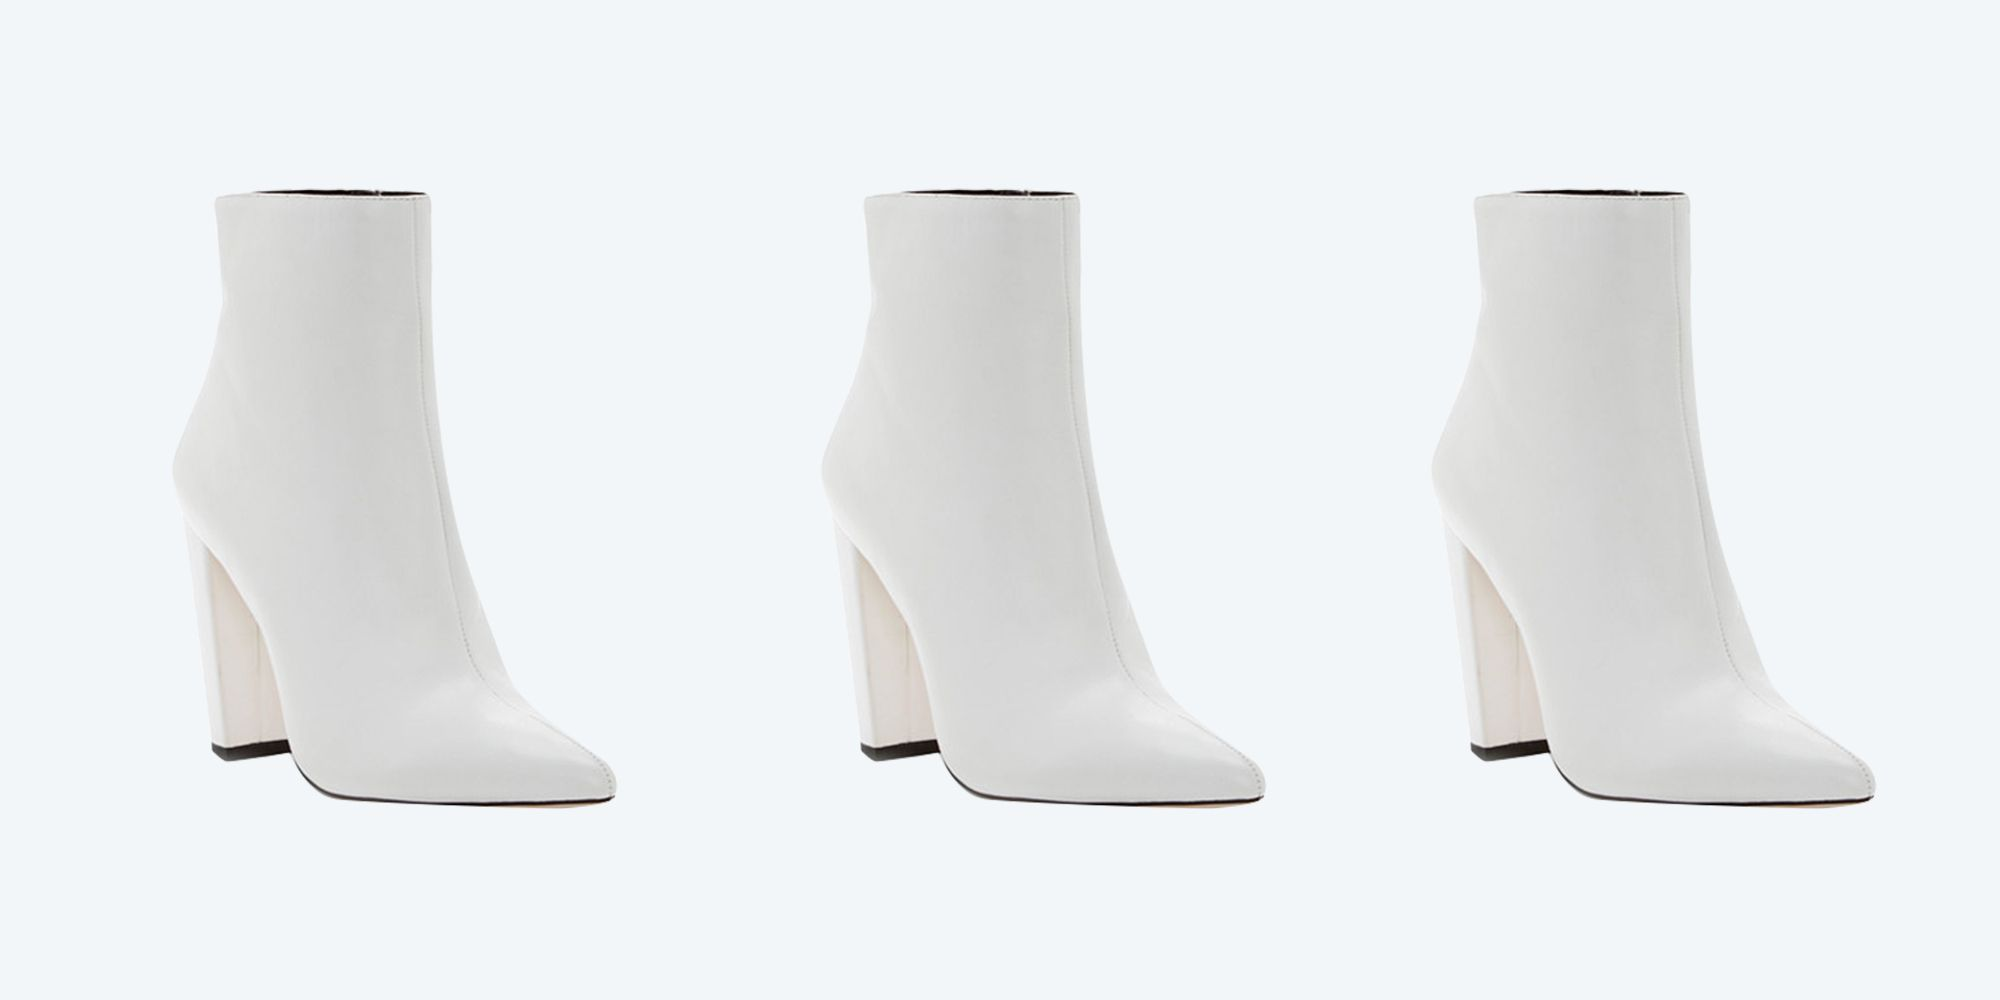 ec2f0945735d Jessica Simpson Deserves To Be A Billionaire for Making These White Boots